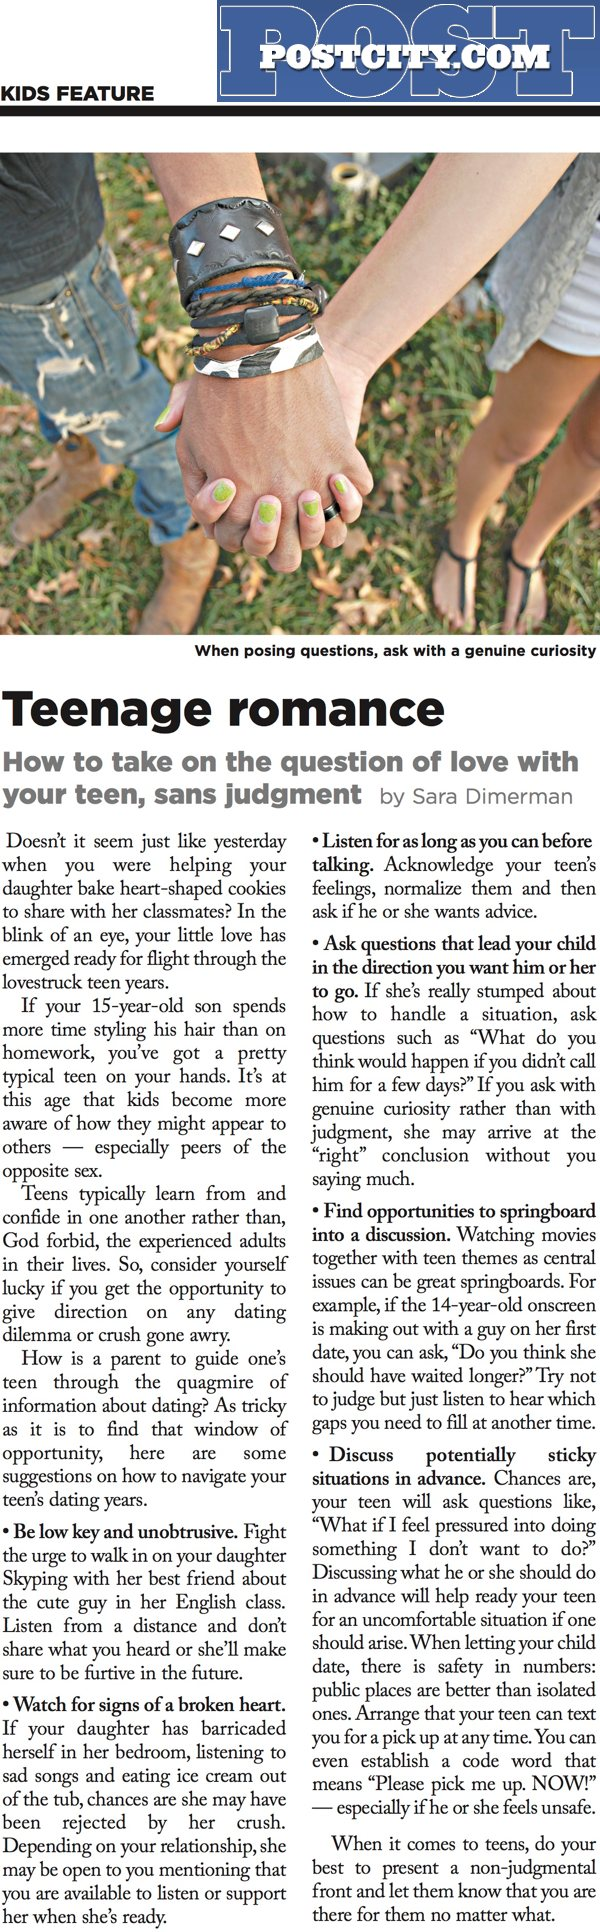 Image: Teenage romance: how to take on the question of love with your teen, sans judgement